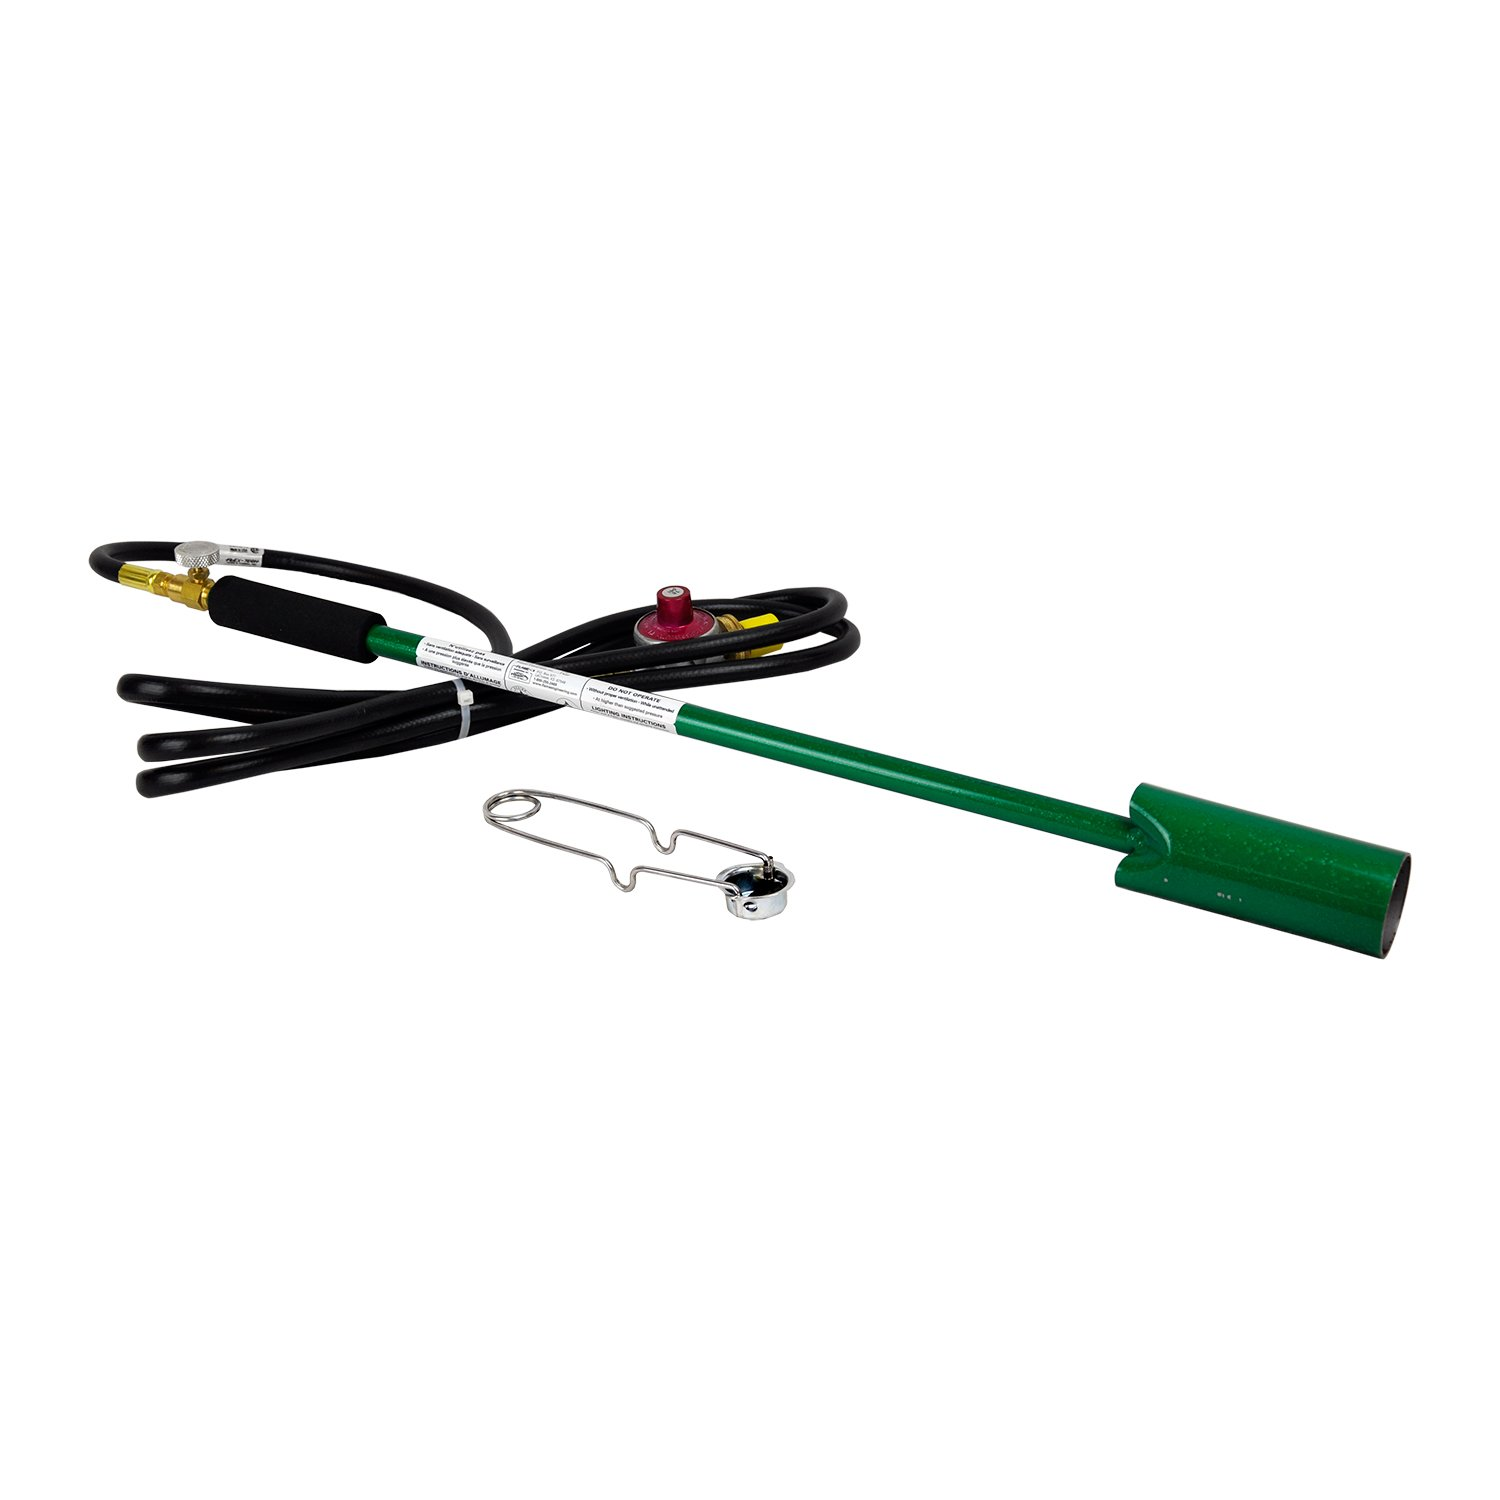 Propane Vapor Torch Kit